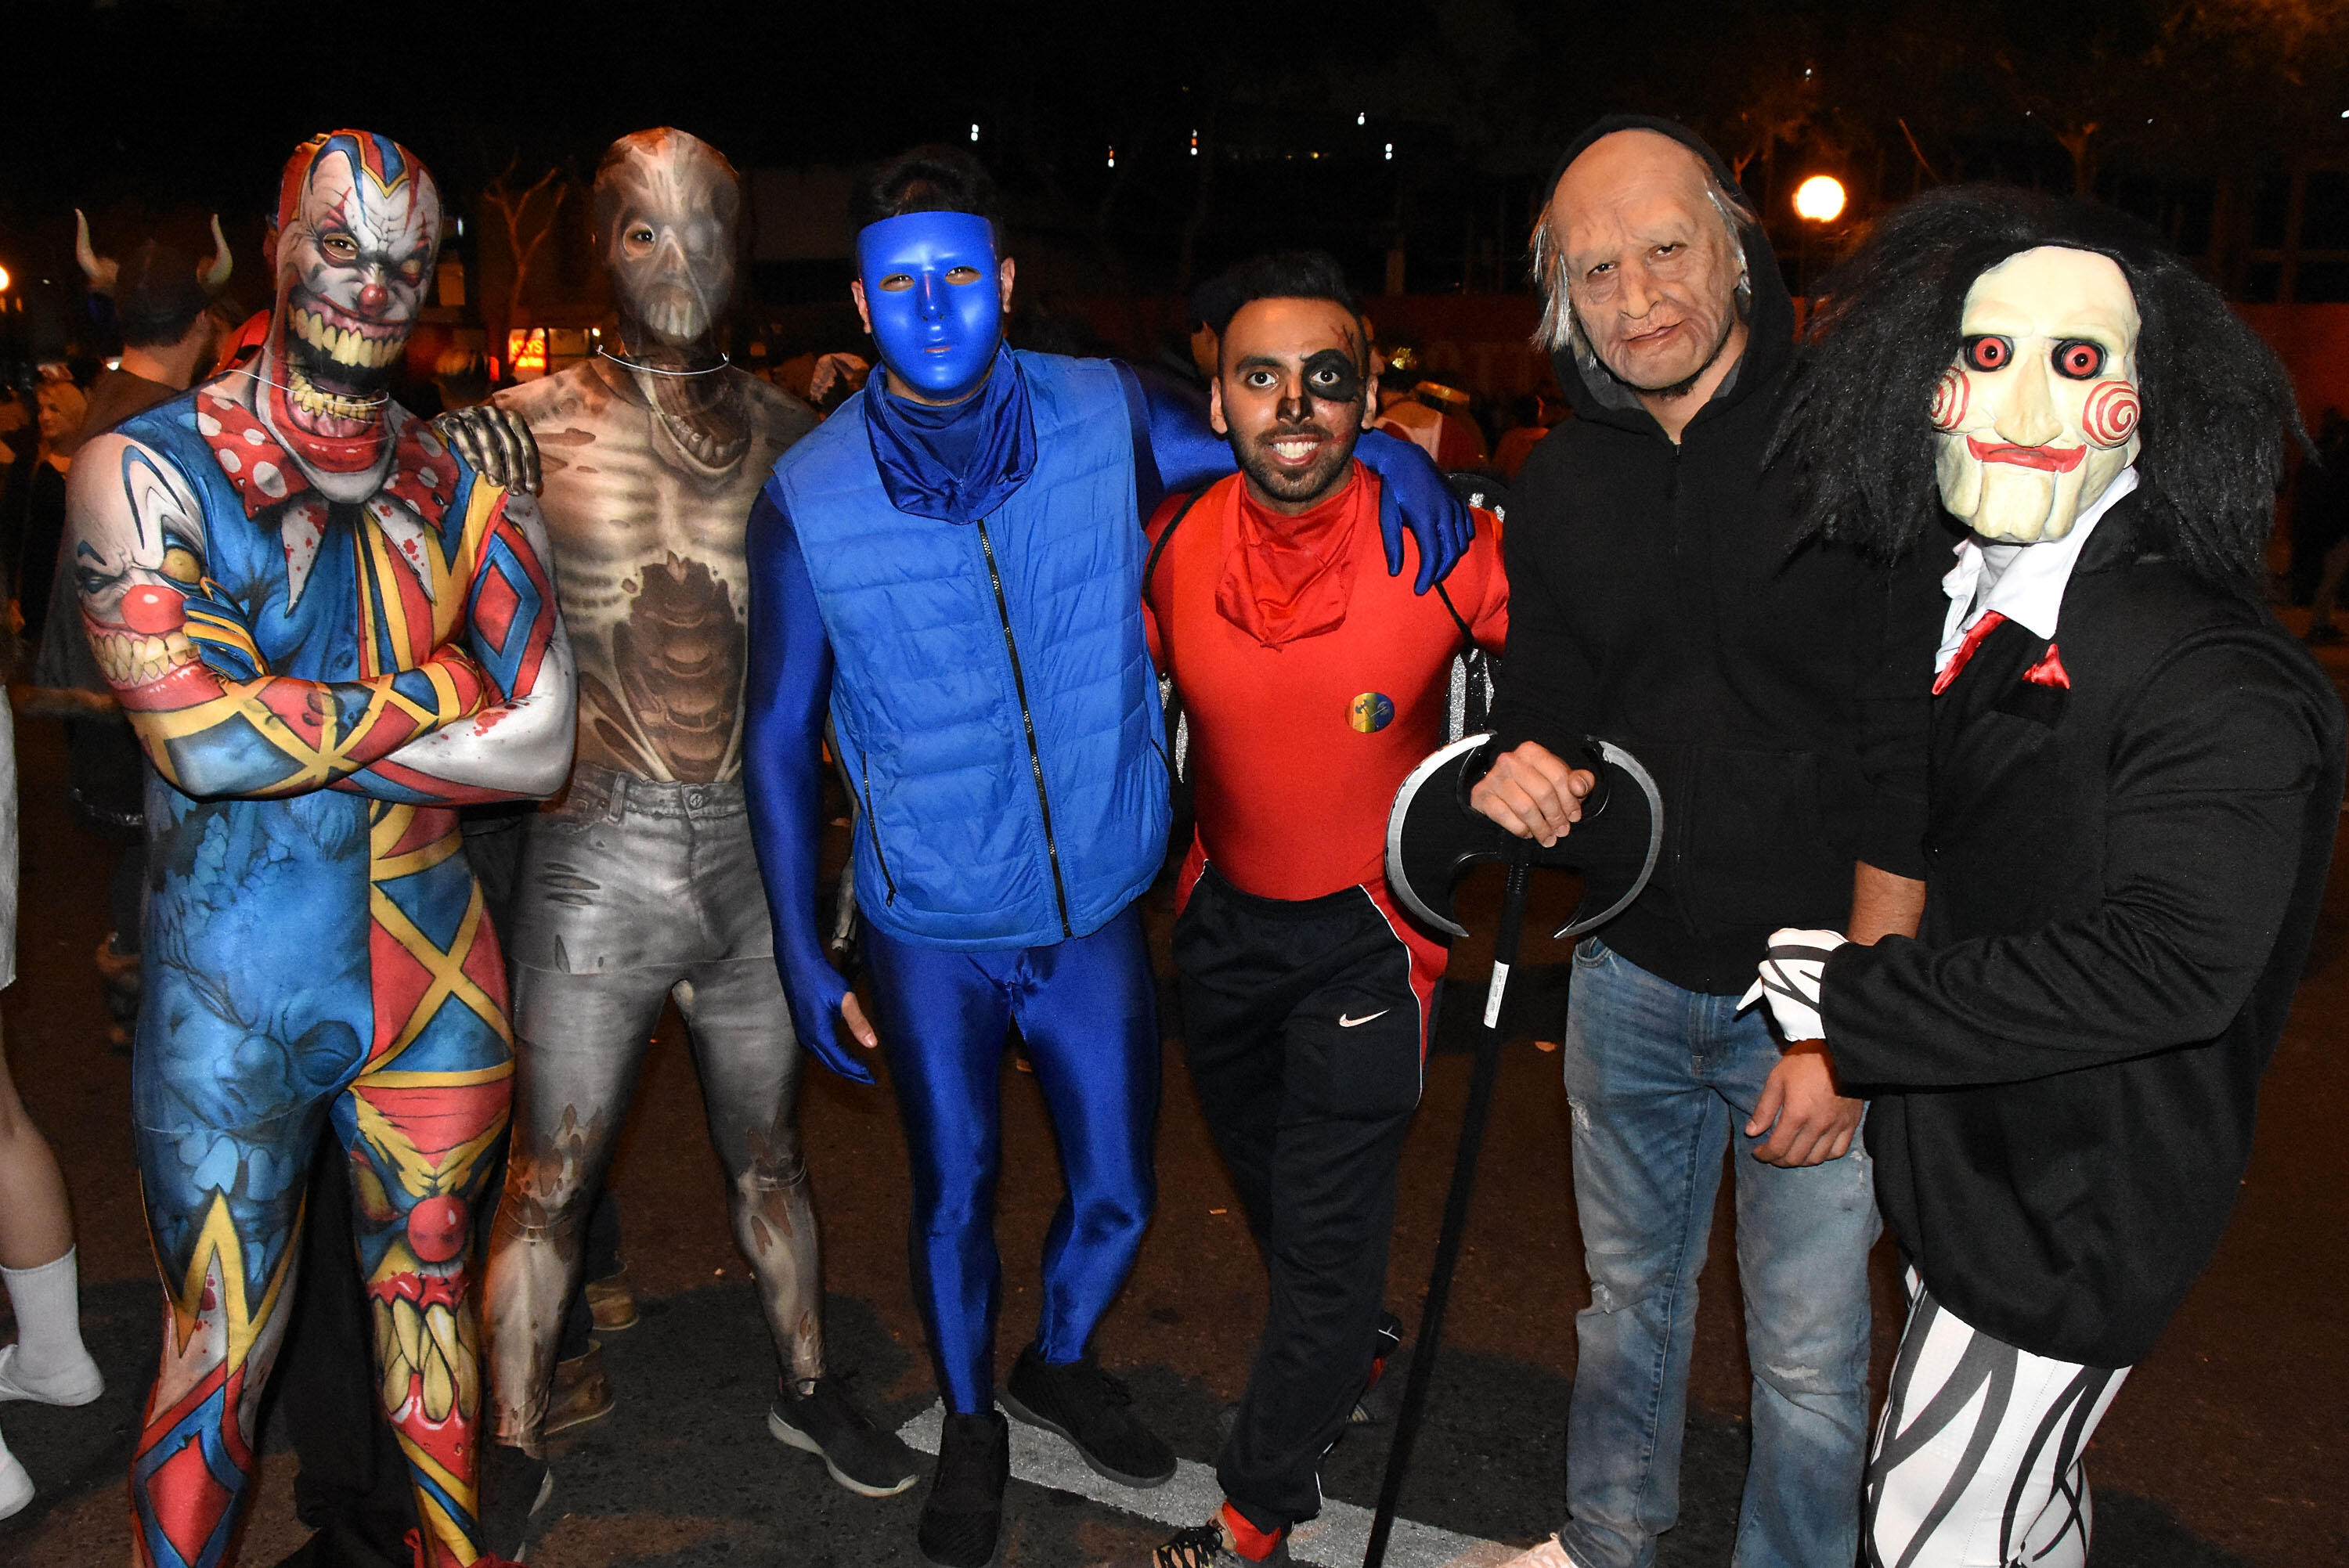 Thousands Pack West Hollywood for Halloween Carnaval | iHeartRadio